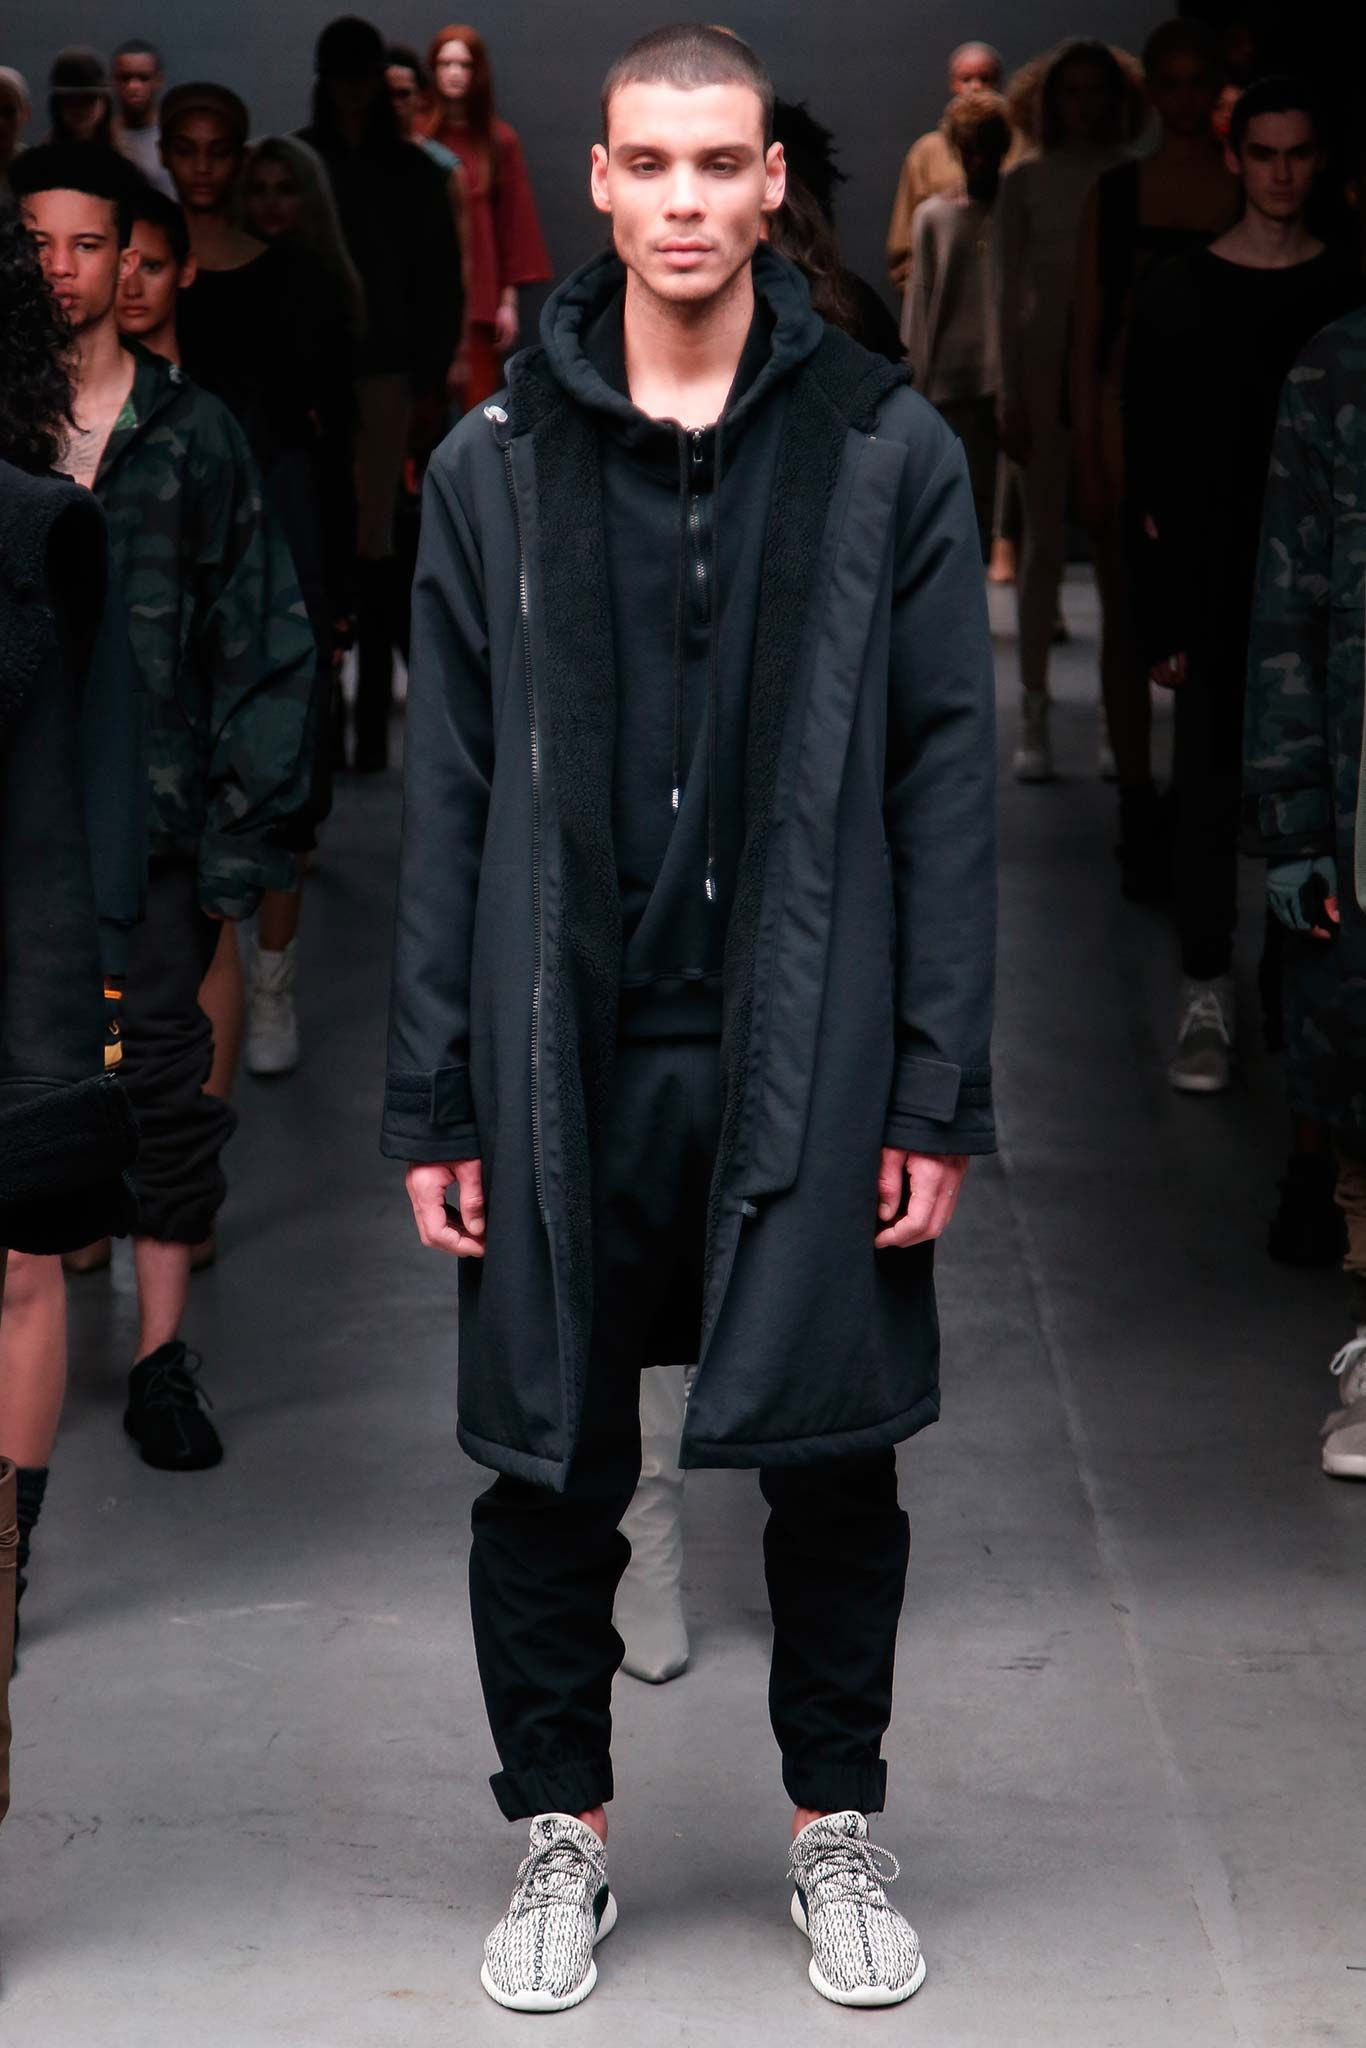 2136e9e03654 Kanye West x Adidas Originals Fall 2015 Ready-to-Wear - Collection -  Gallery - Style.com